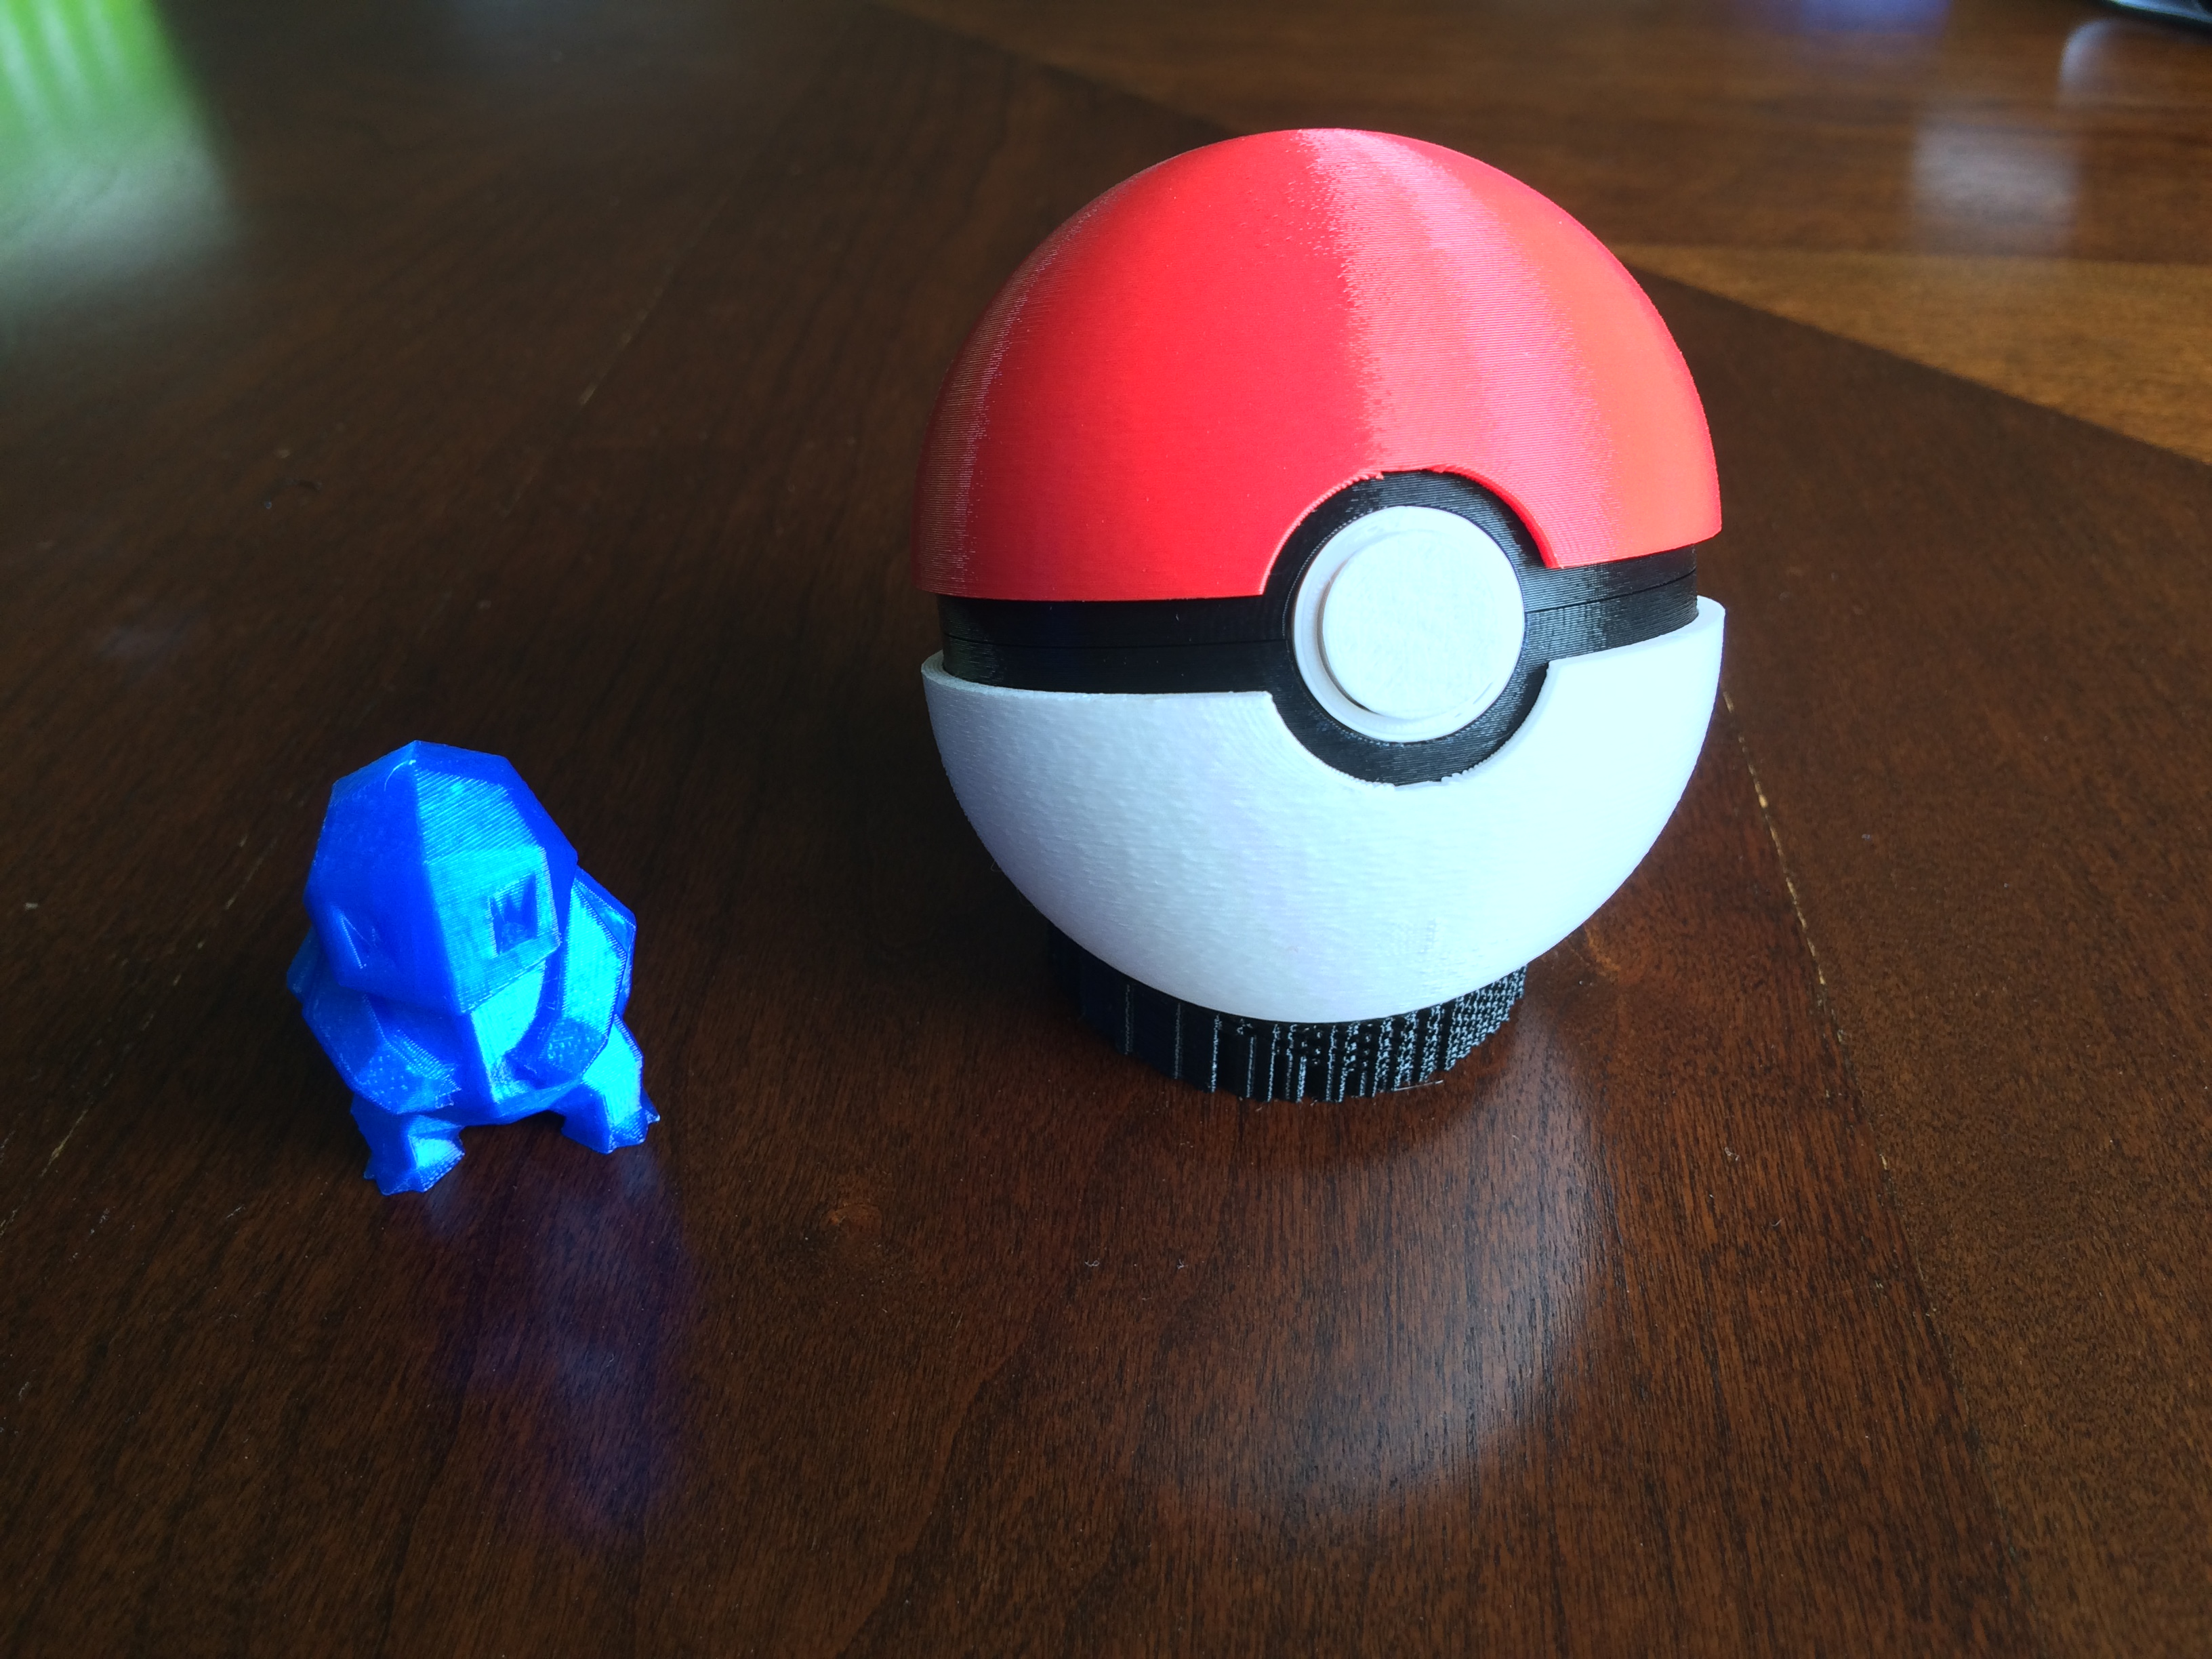 3D Printed Pokeball (opens and closes) by SpragClutch   Pinshape